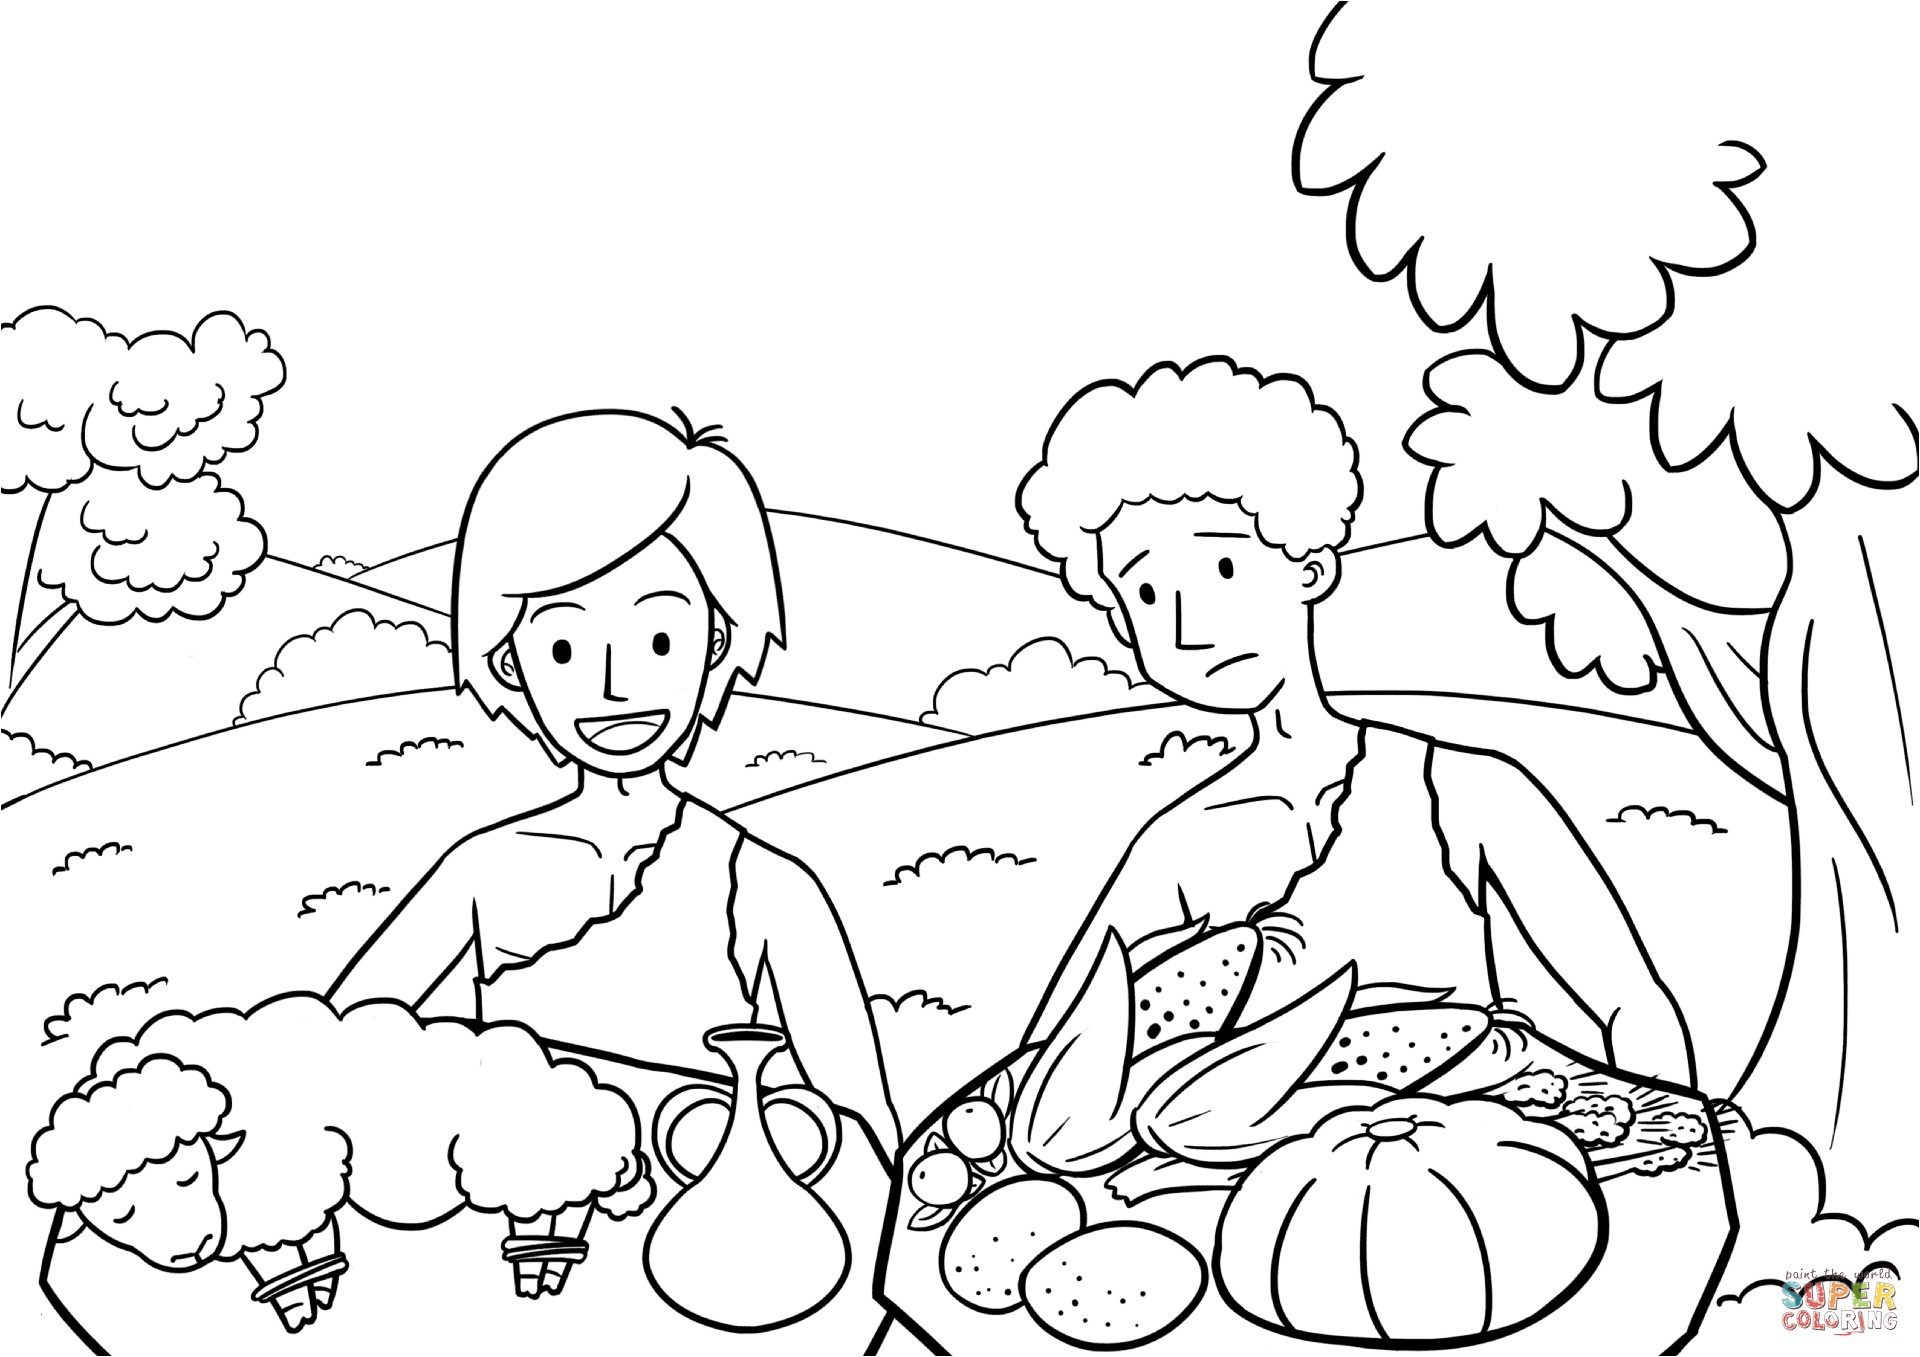 Cain and Abel Coloring Pages  to Print 16s - Free For kids